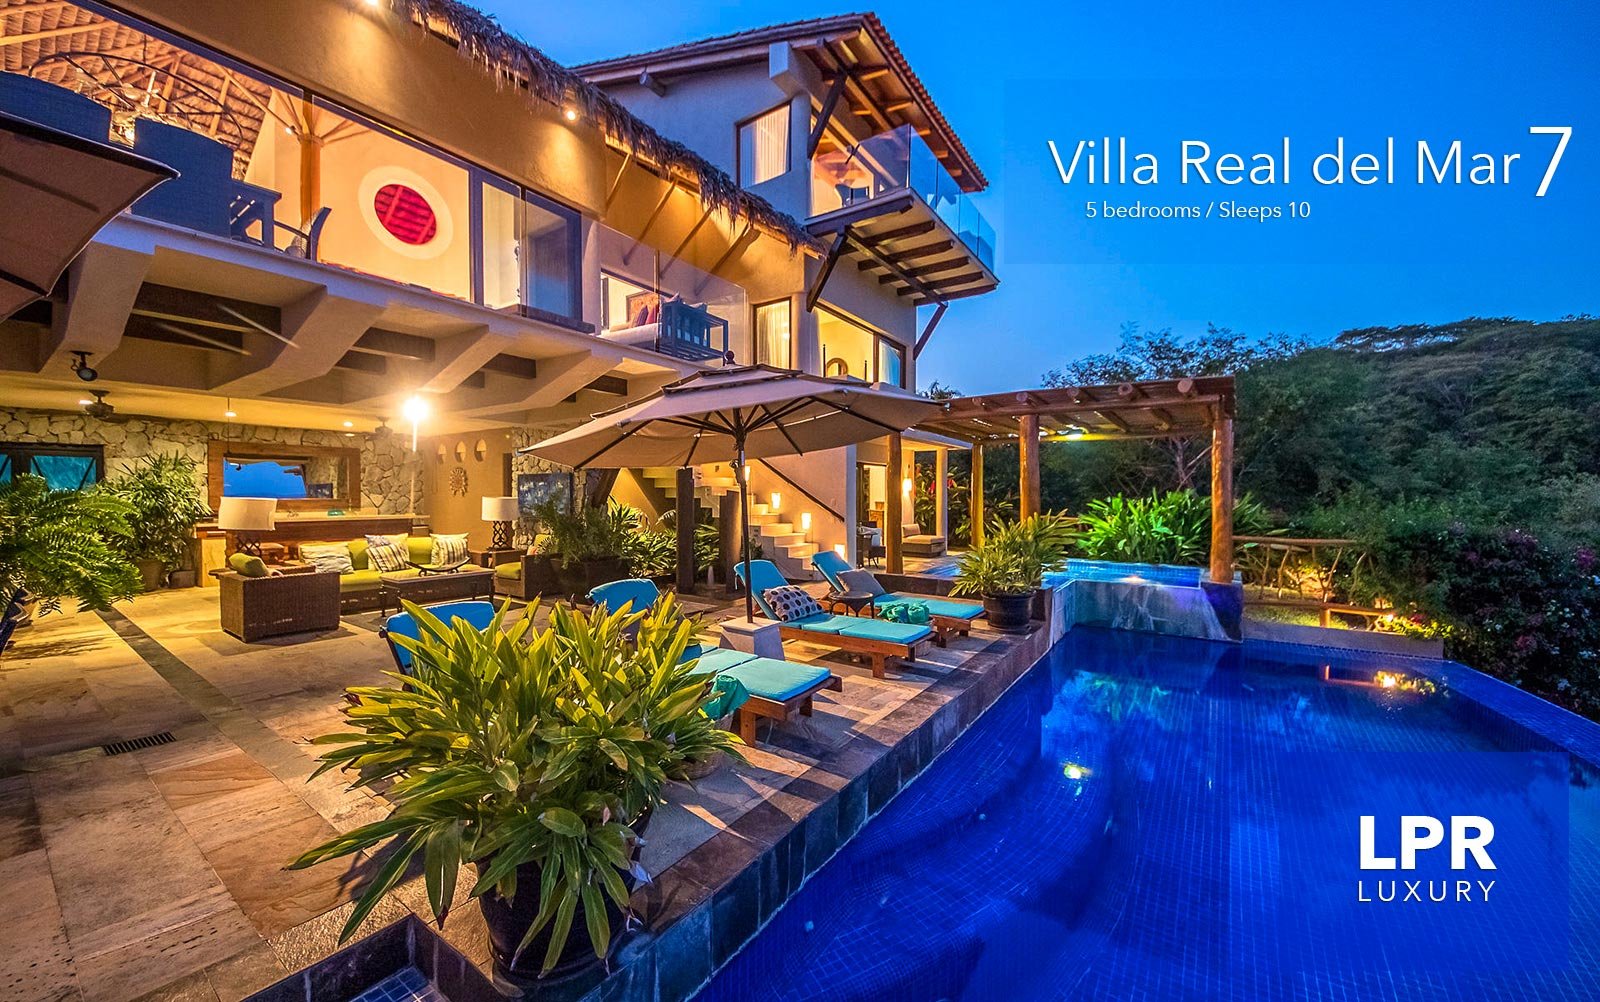 Villa Real del Mar 7 - Luxury vacation rental at Real del Mar, Punta de Mita, Riviera Nayarit, Mexico